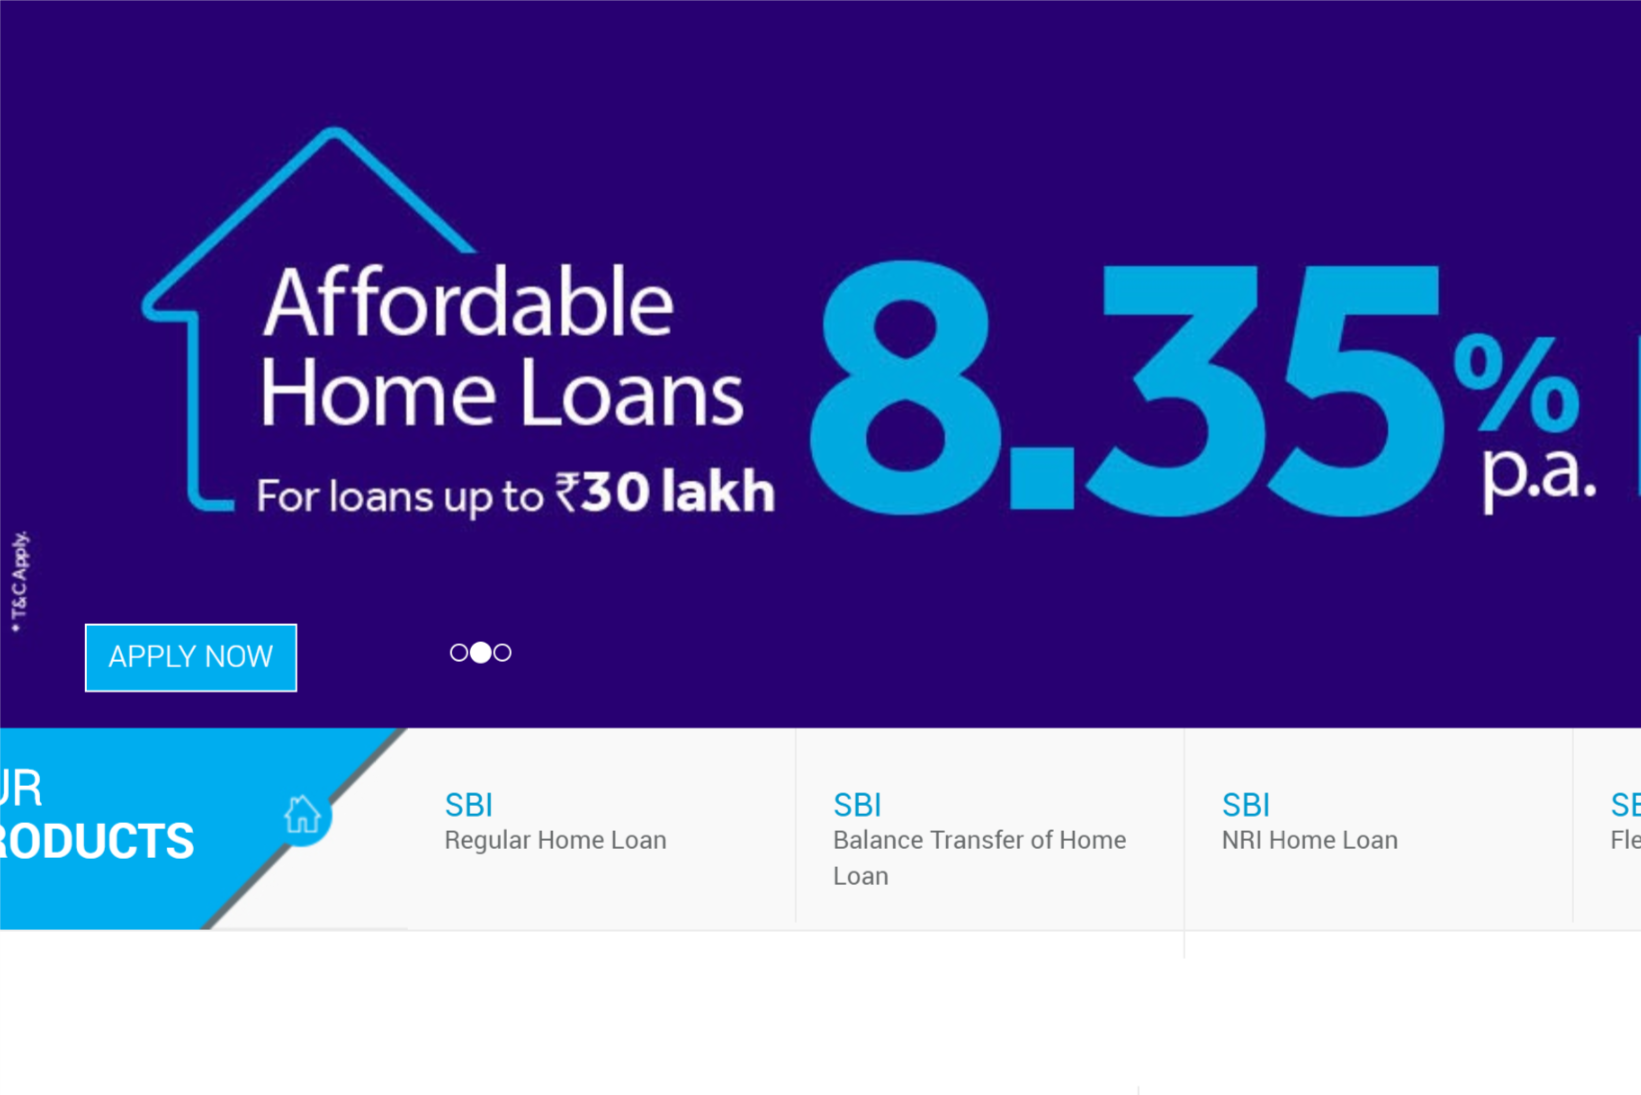 Which Bank Has The Lowest Interest Rate For Car Loans